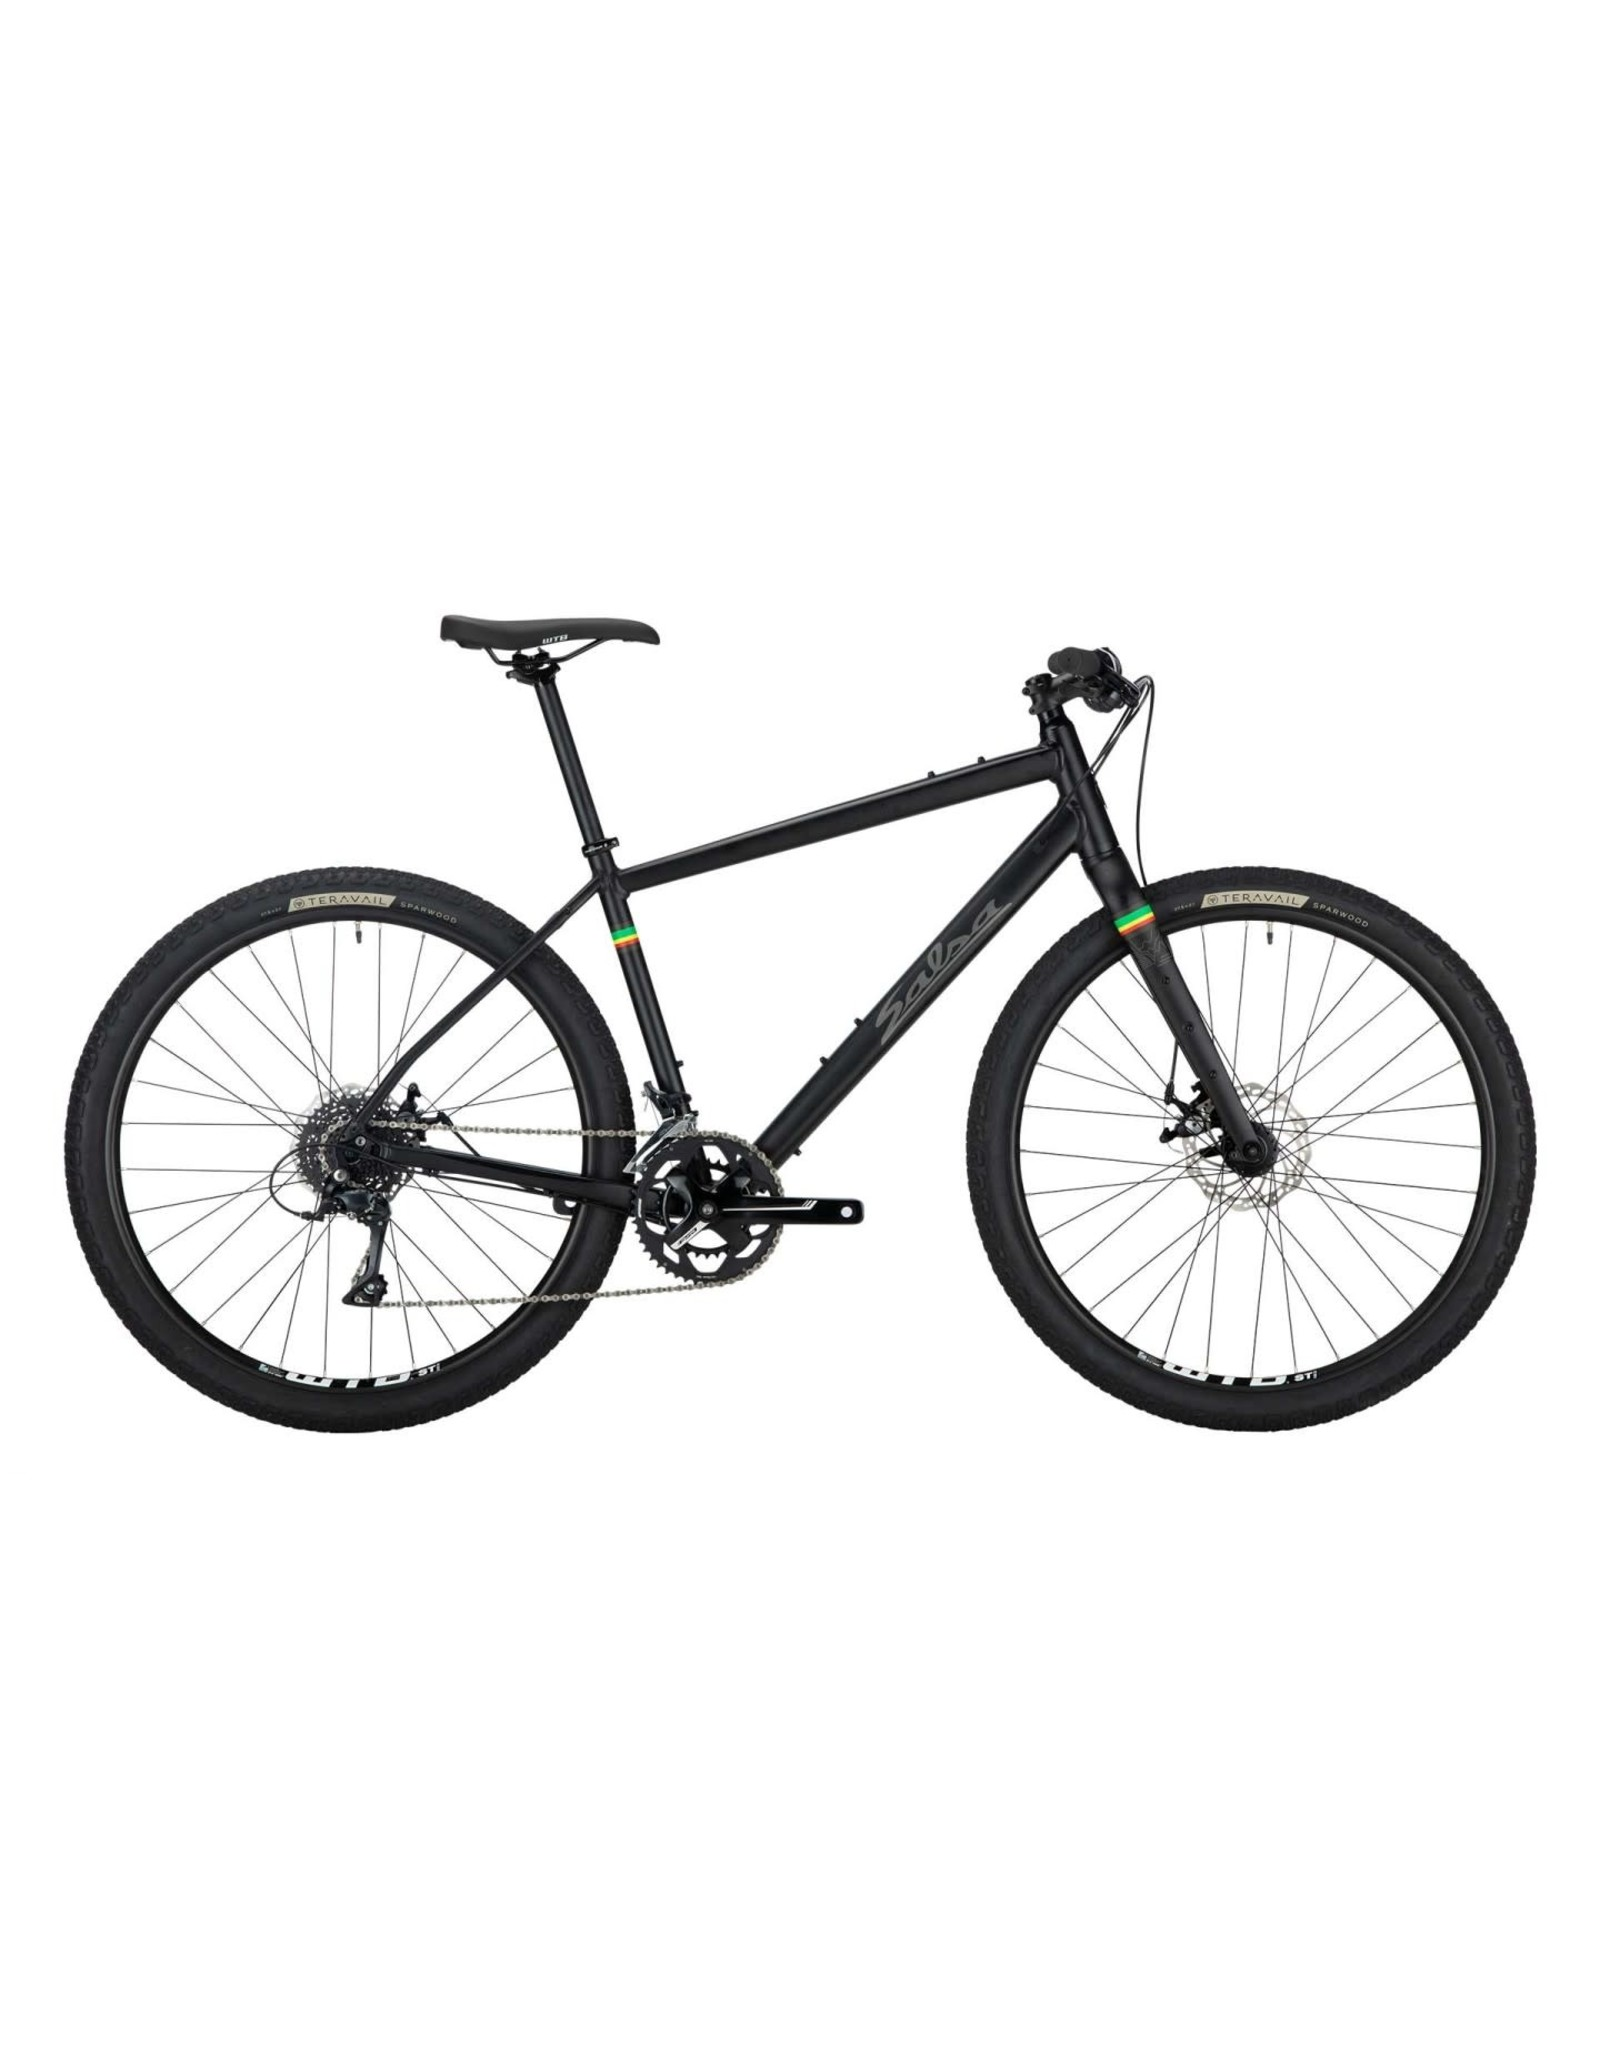 Salsa 2020 Journeyman 650b Flatbar Sora Bike